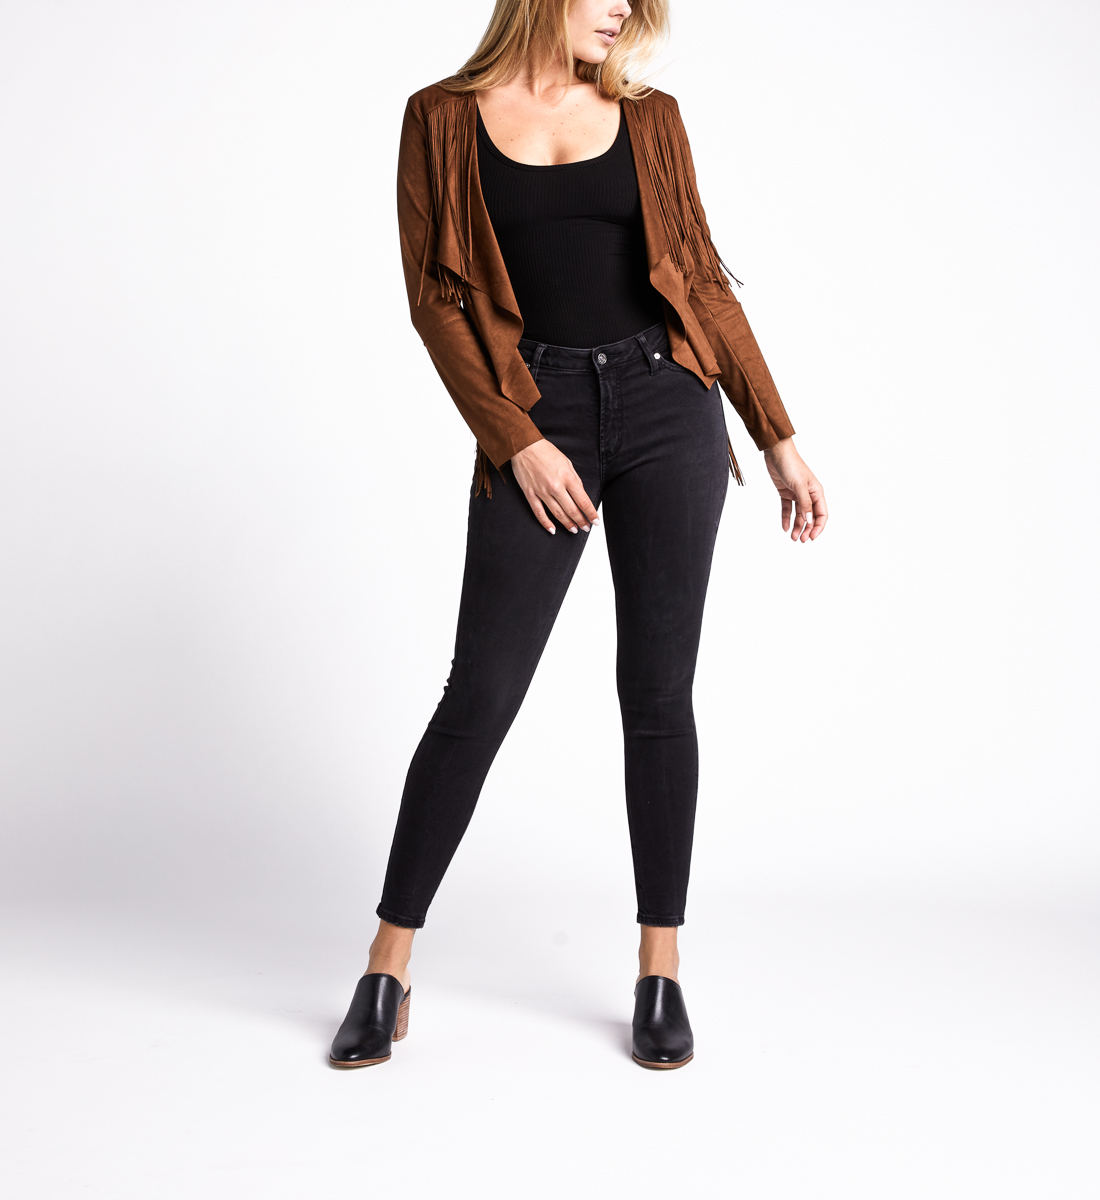 Silver Jeans Most Wanted Mid Rise Skinny Leg Jeans